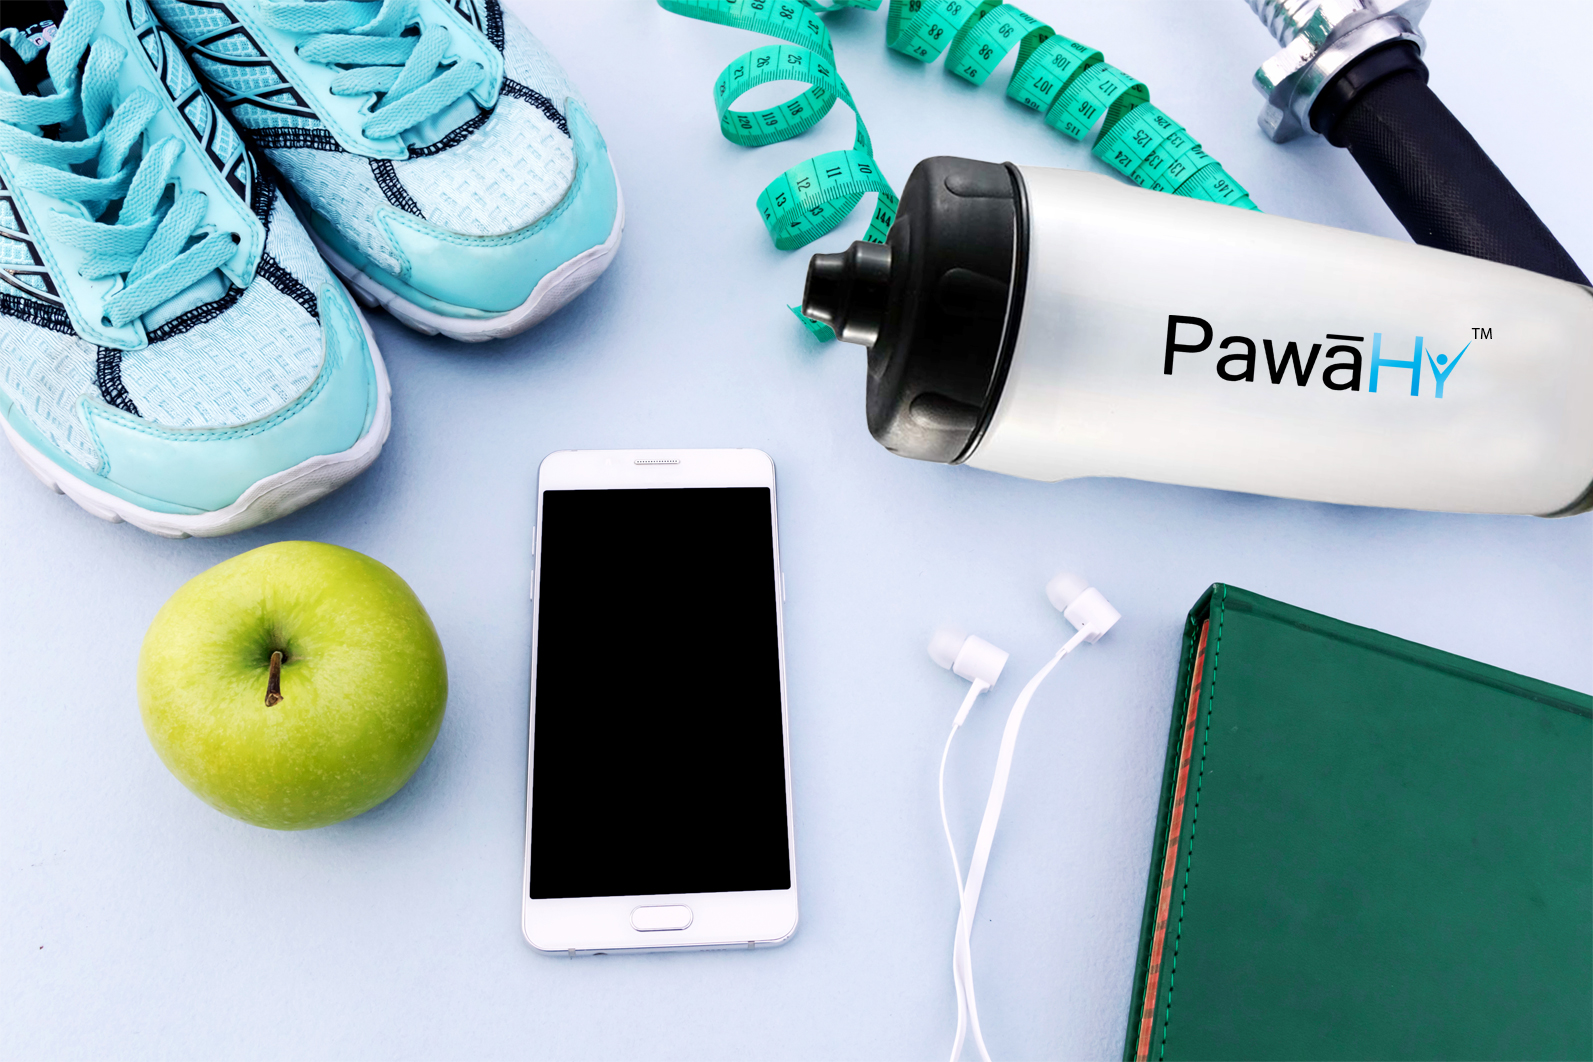 PawaHy Handheld Bottle For Cyclists, Runners, Marathoners & Other Outdoor Sports (Natural Color, 500ml)